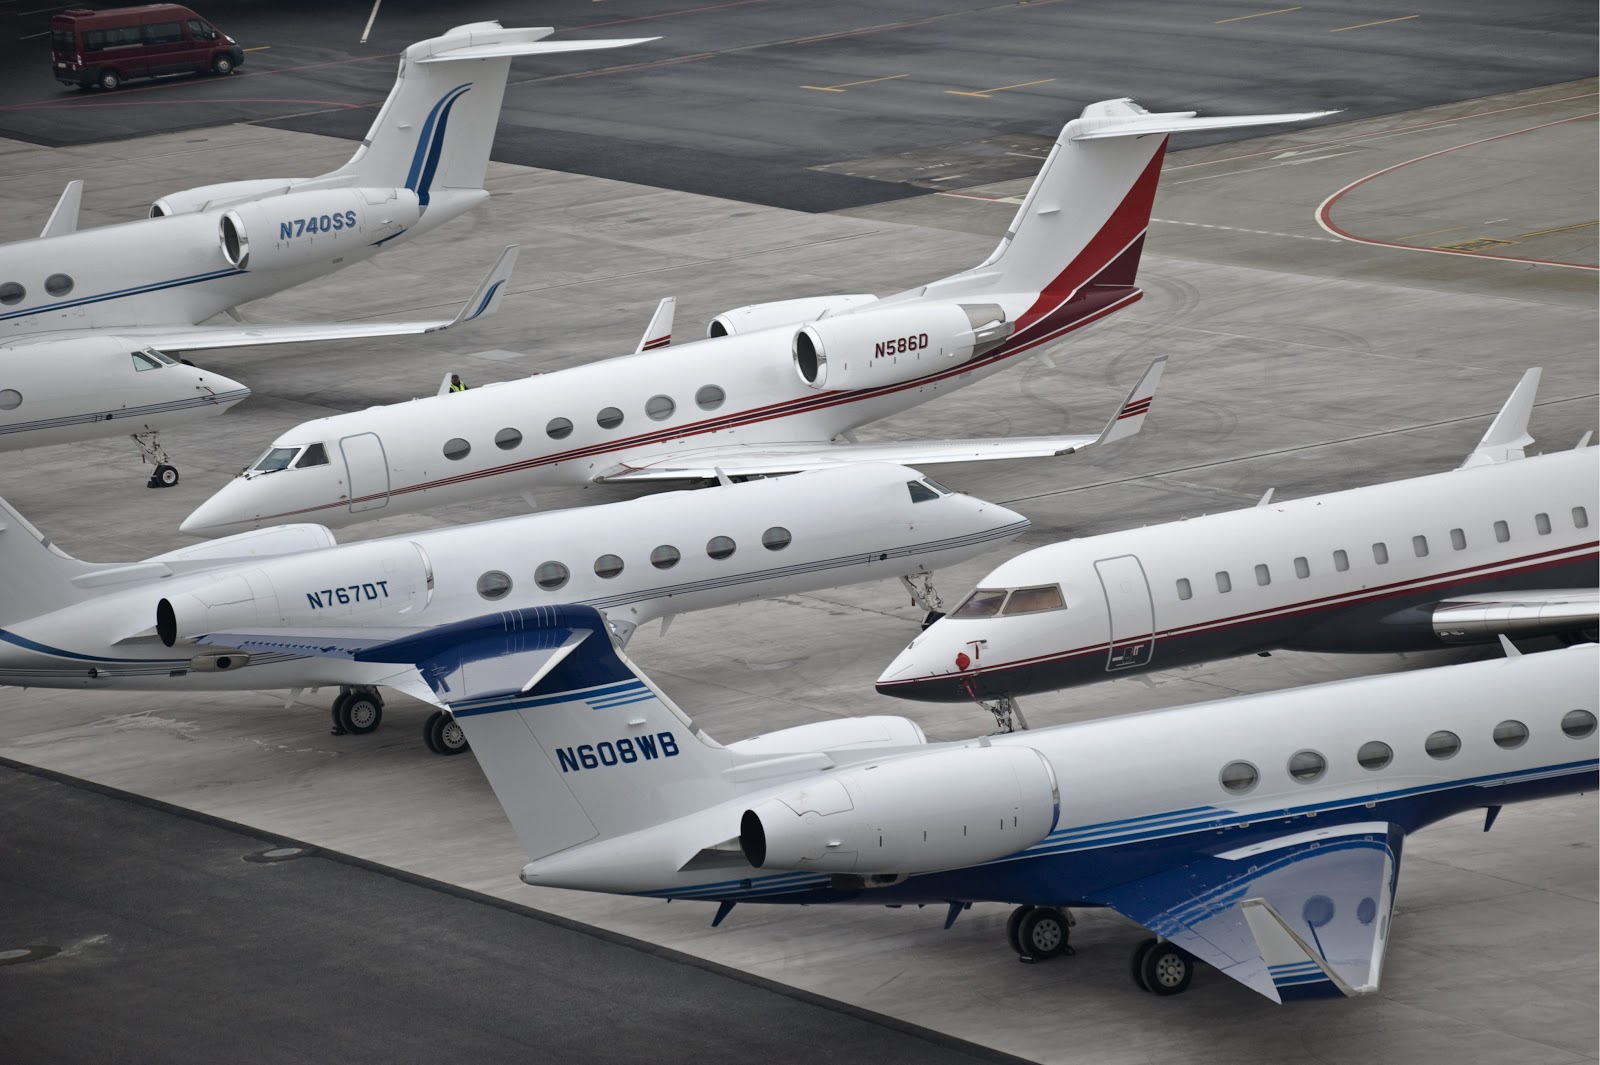 President Jonathans 11th Private Jet  Waste Of Money Or Not  Politics